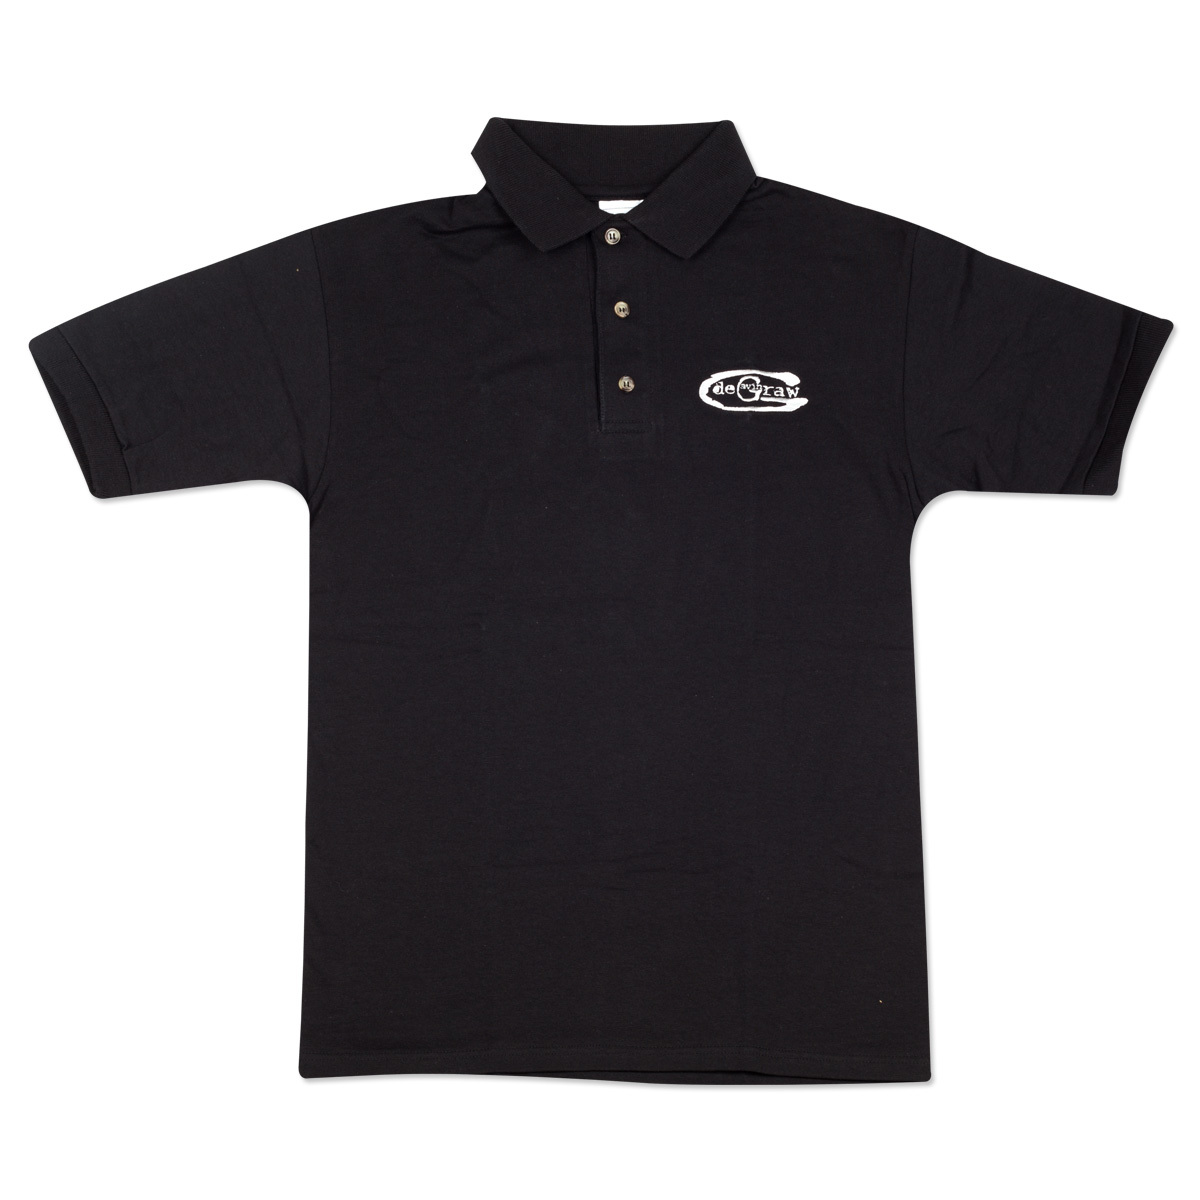 "Gavin DeGraw ""G"" Polo"